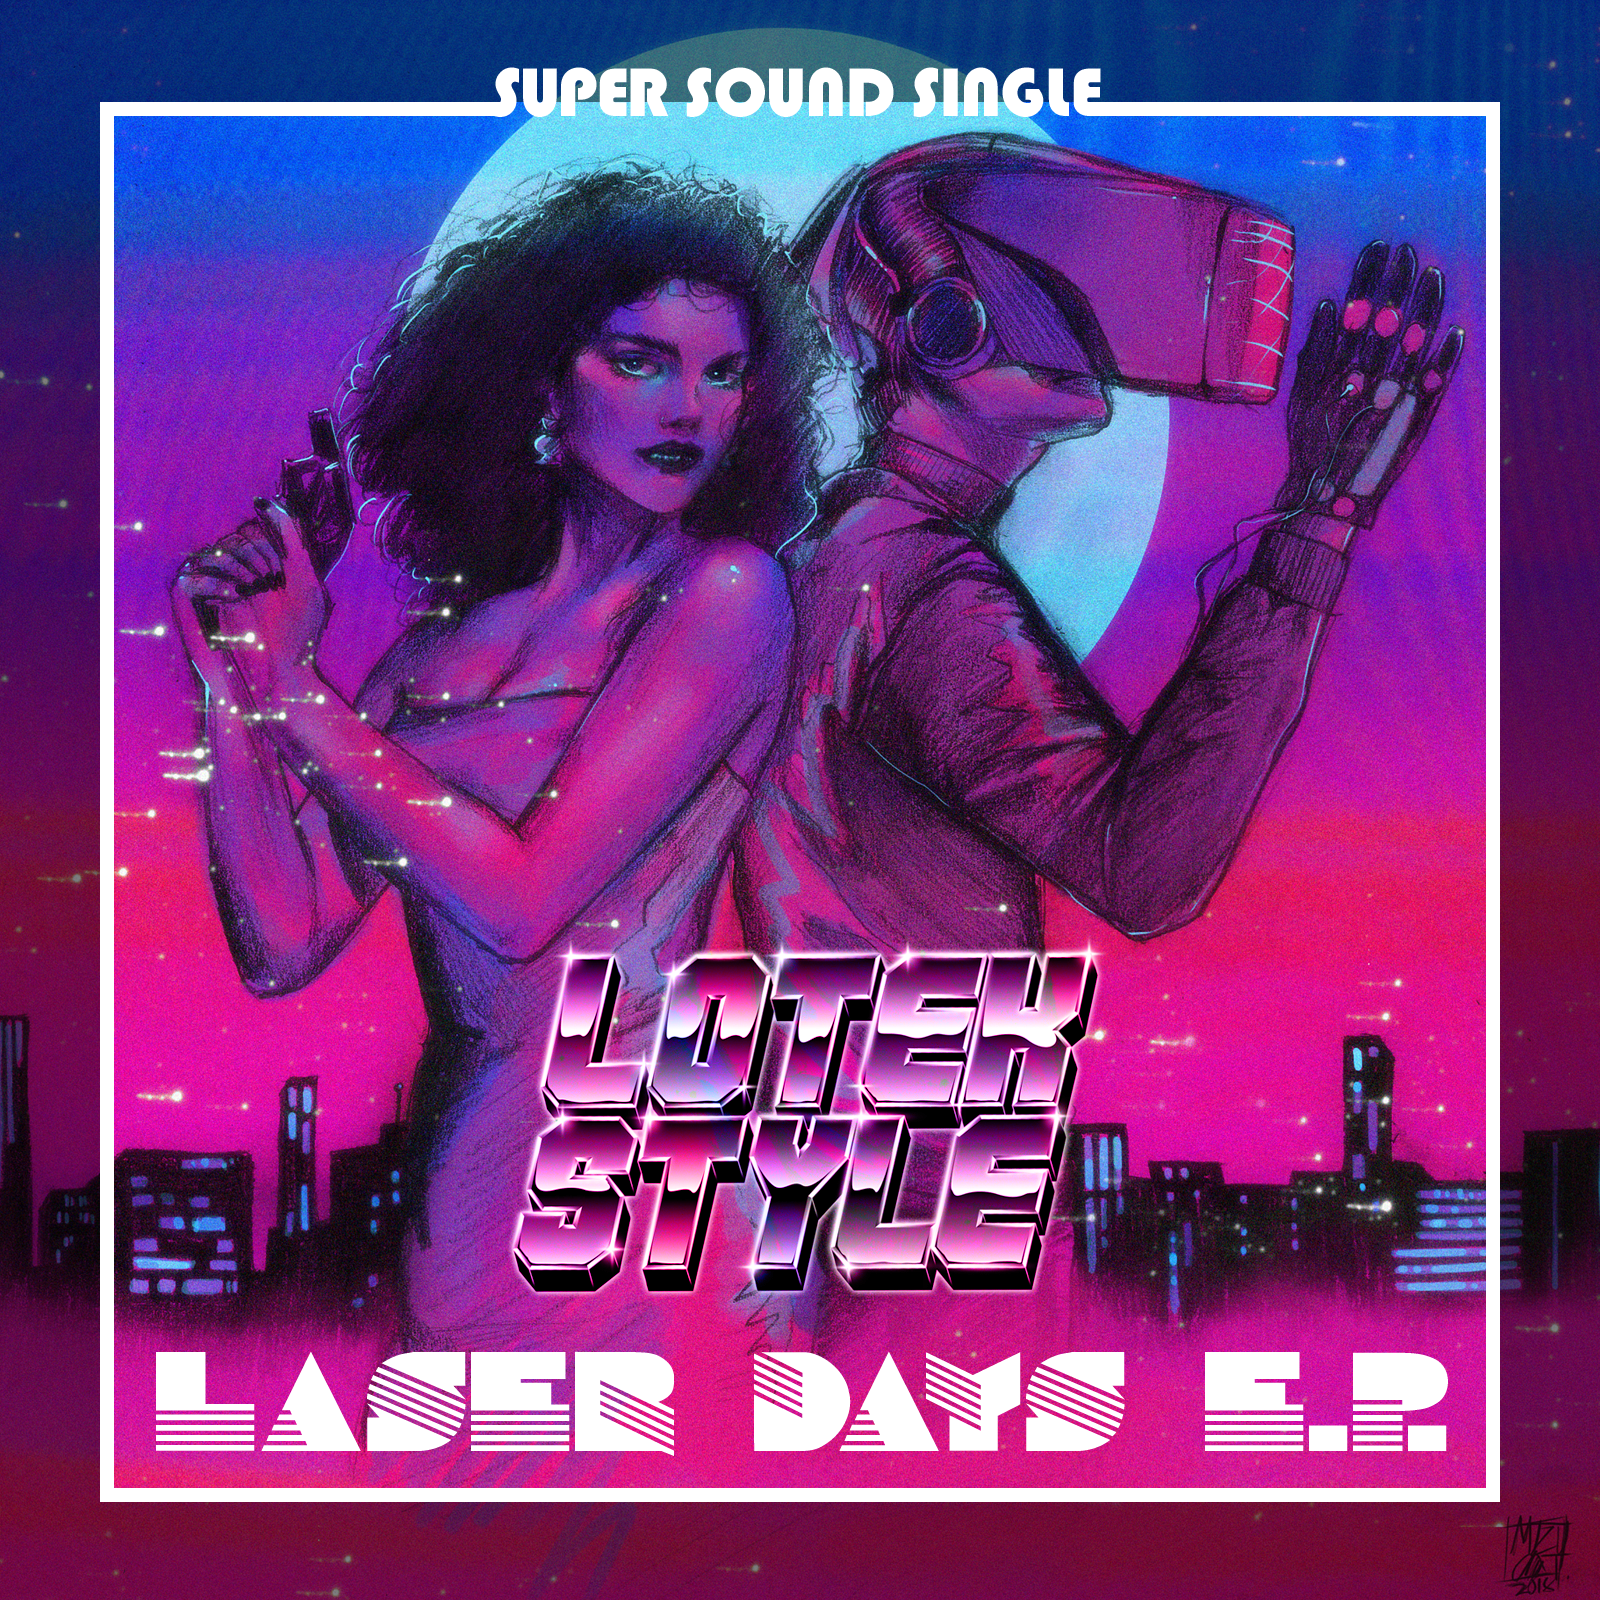 The final version of the Laser Days artwork looks amazing. Drawn by artist Mizucat.